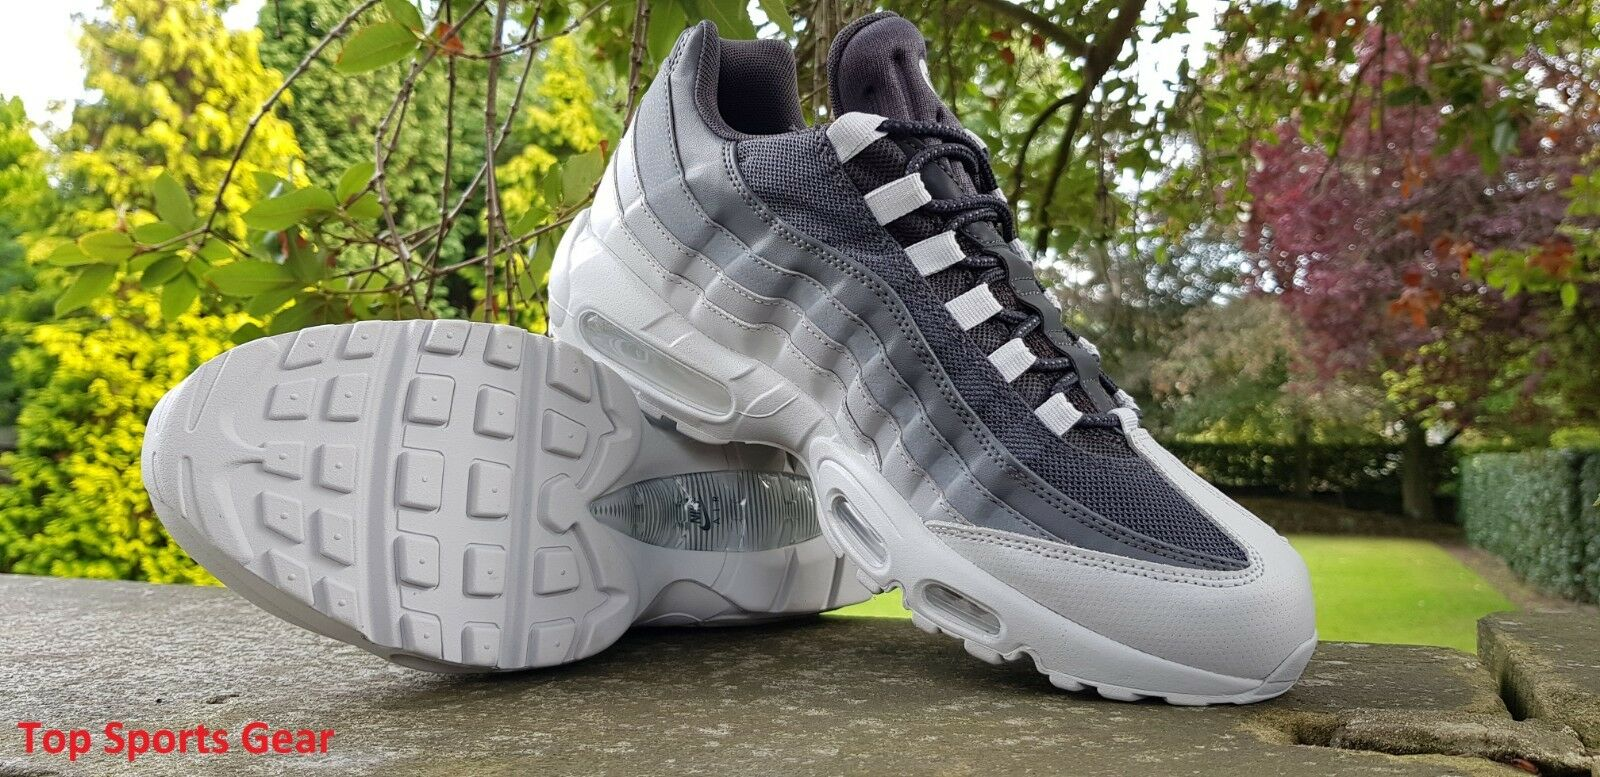 Nike Air Bleu Max 95 ESSENTIAL Baskets Homme Bleu Air Gris Jaune Tailles UK 5 -12 RRP £ 129 692400